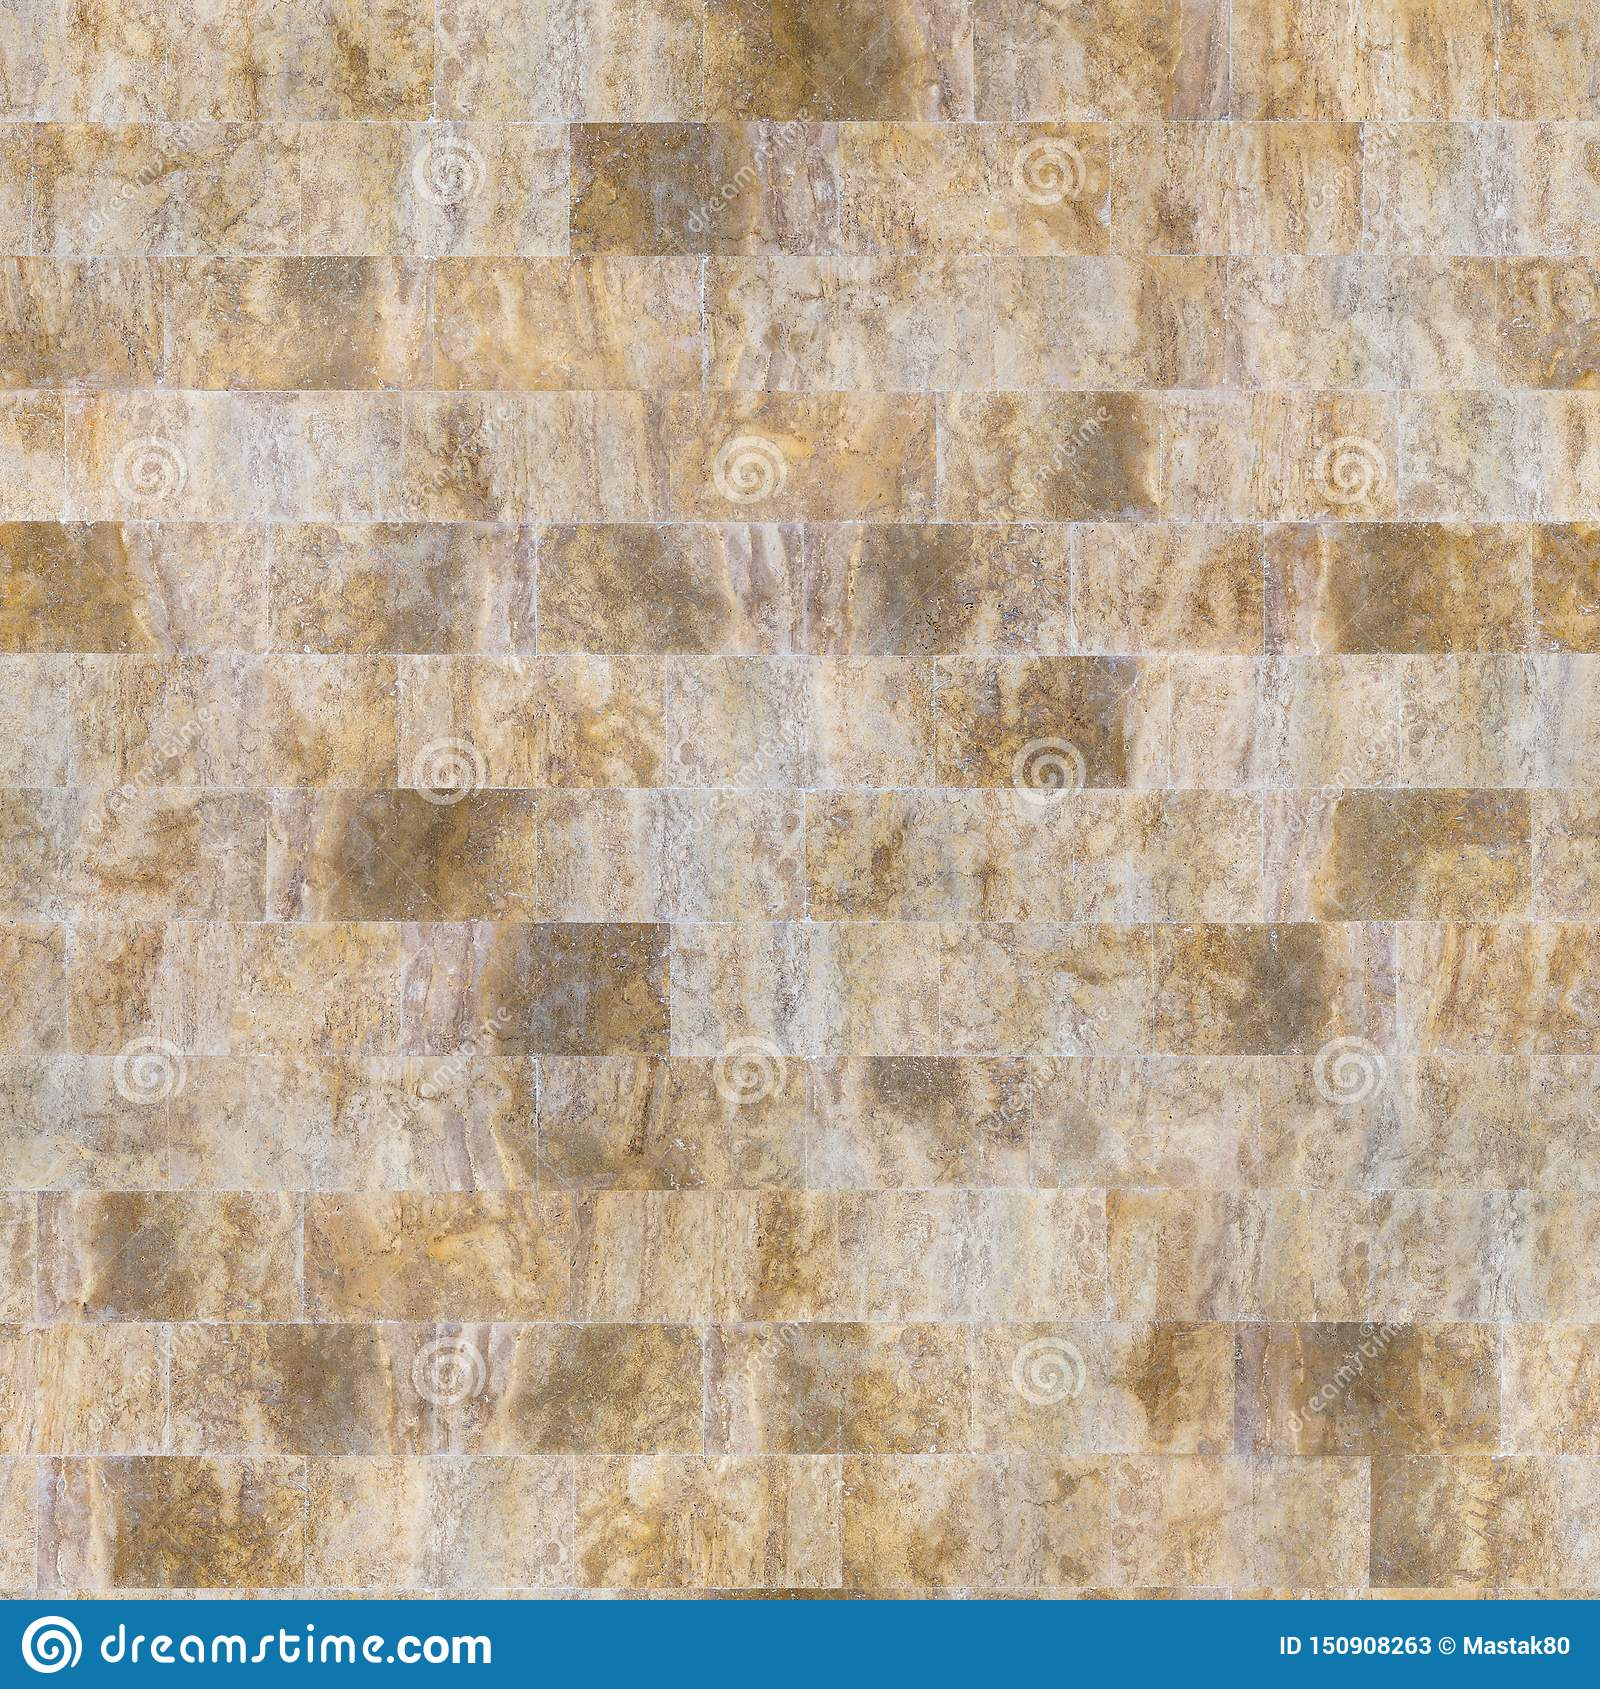 Bathroom Tiles Are Made In Brown Color Scheme With Textured